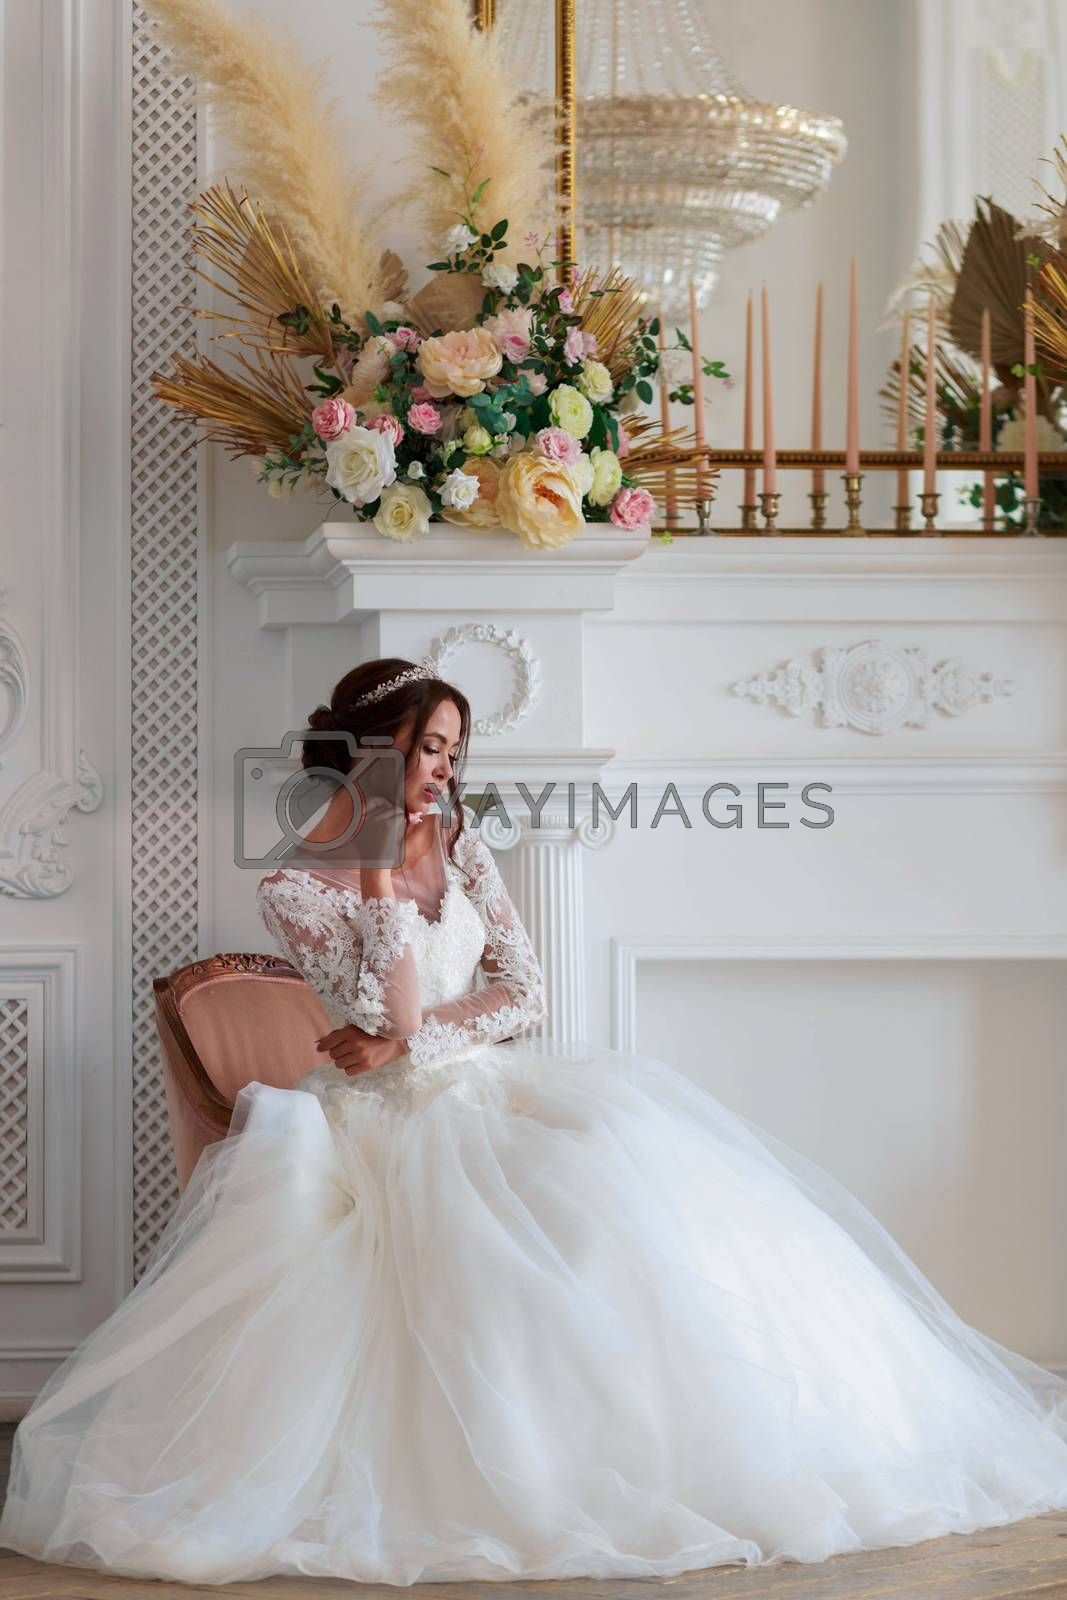 The bride in a white wedding dress sits thoughtfully in a chair waiting for the groom.